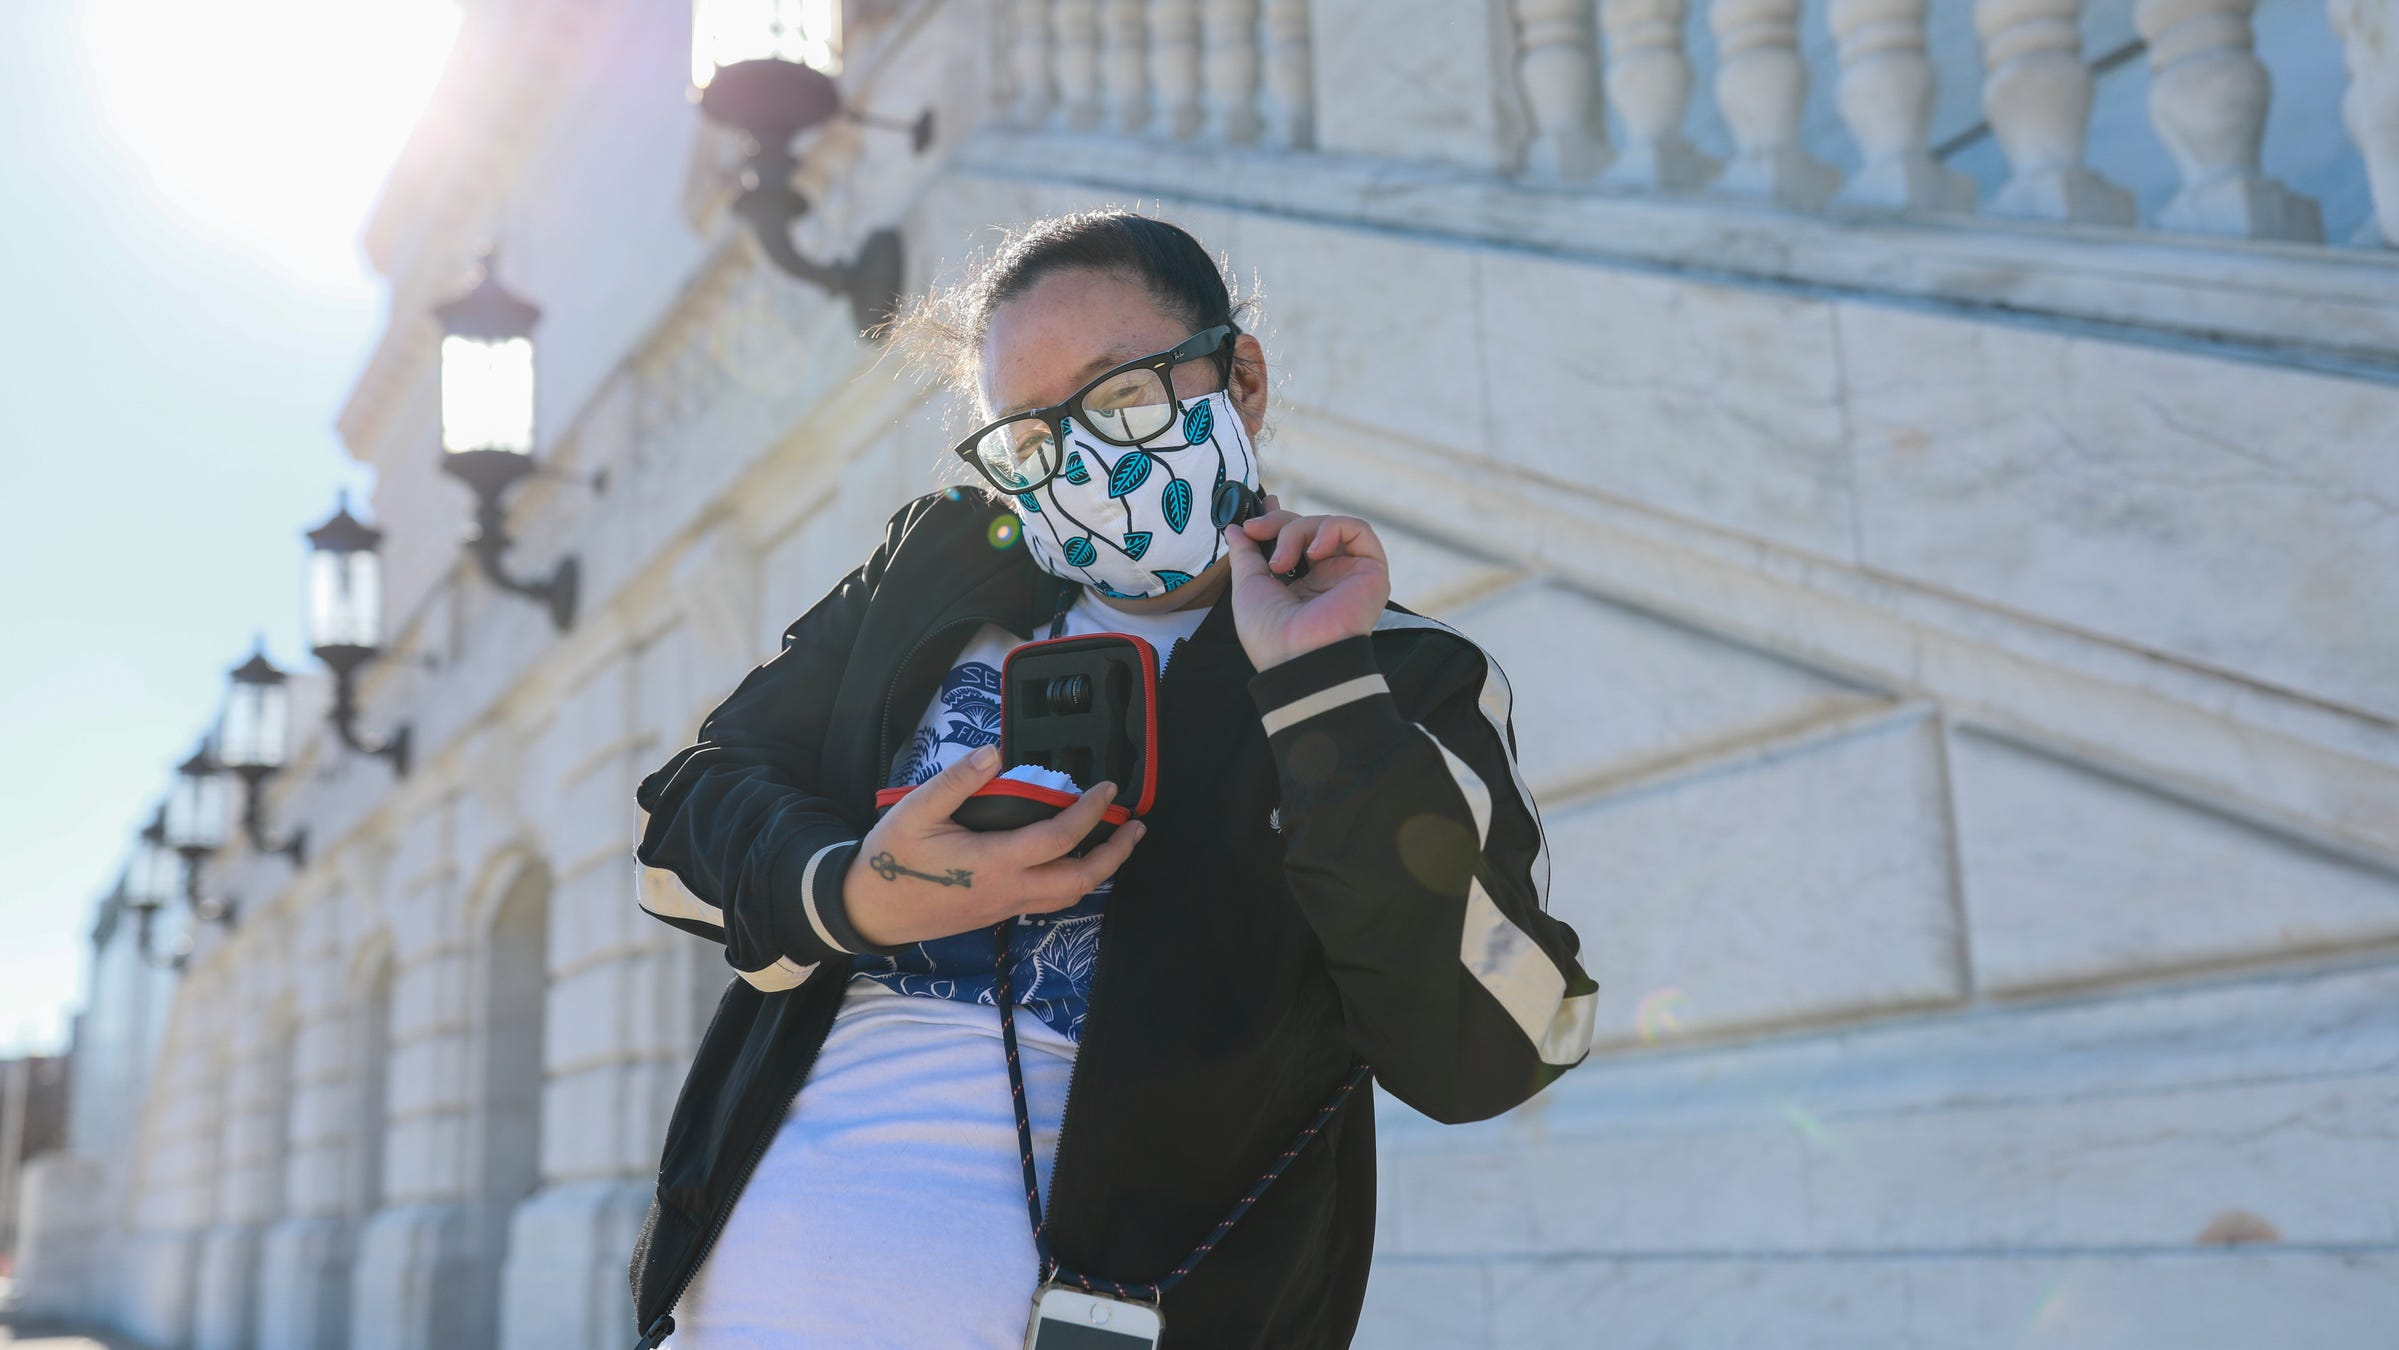 www.freep.com: Detroit rocker's photos of people wearing masks tell COVID-19 story of love and endurance